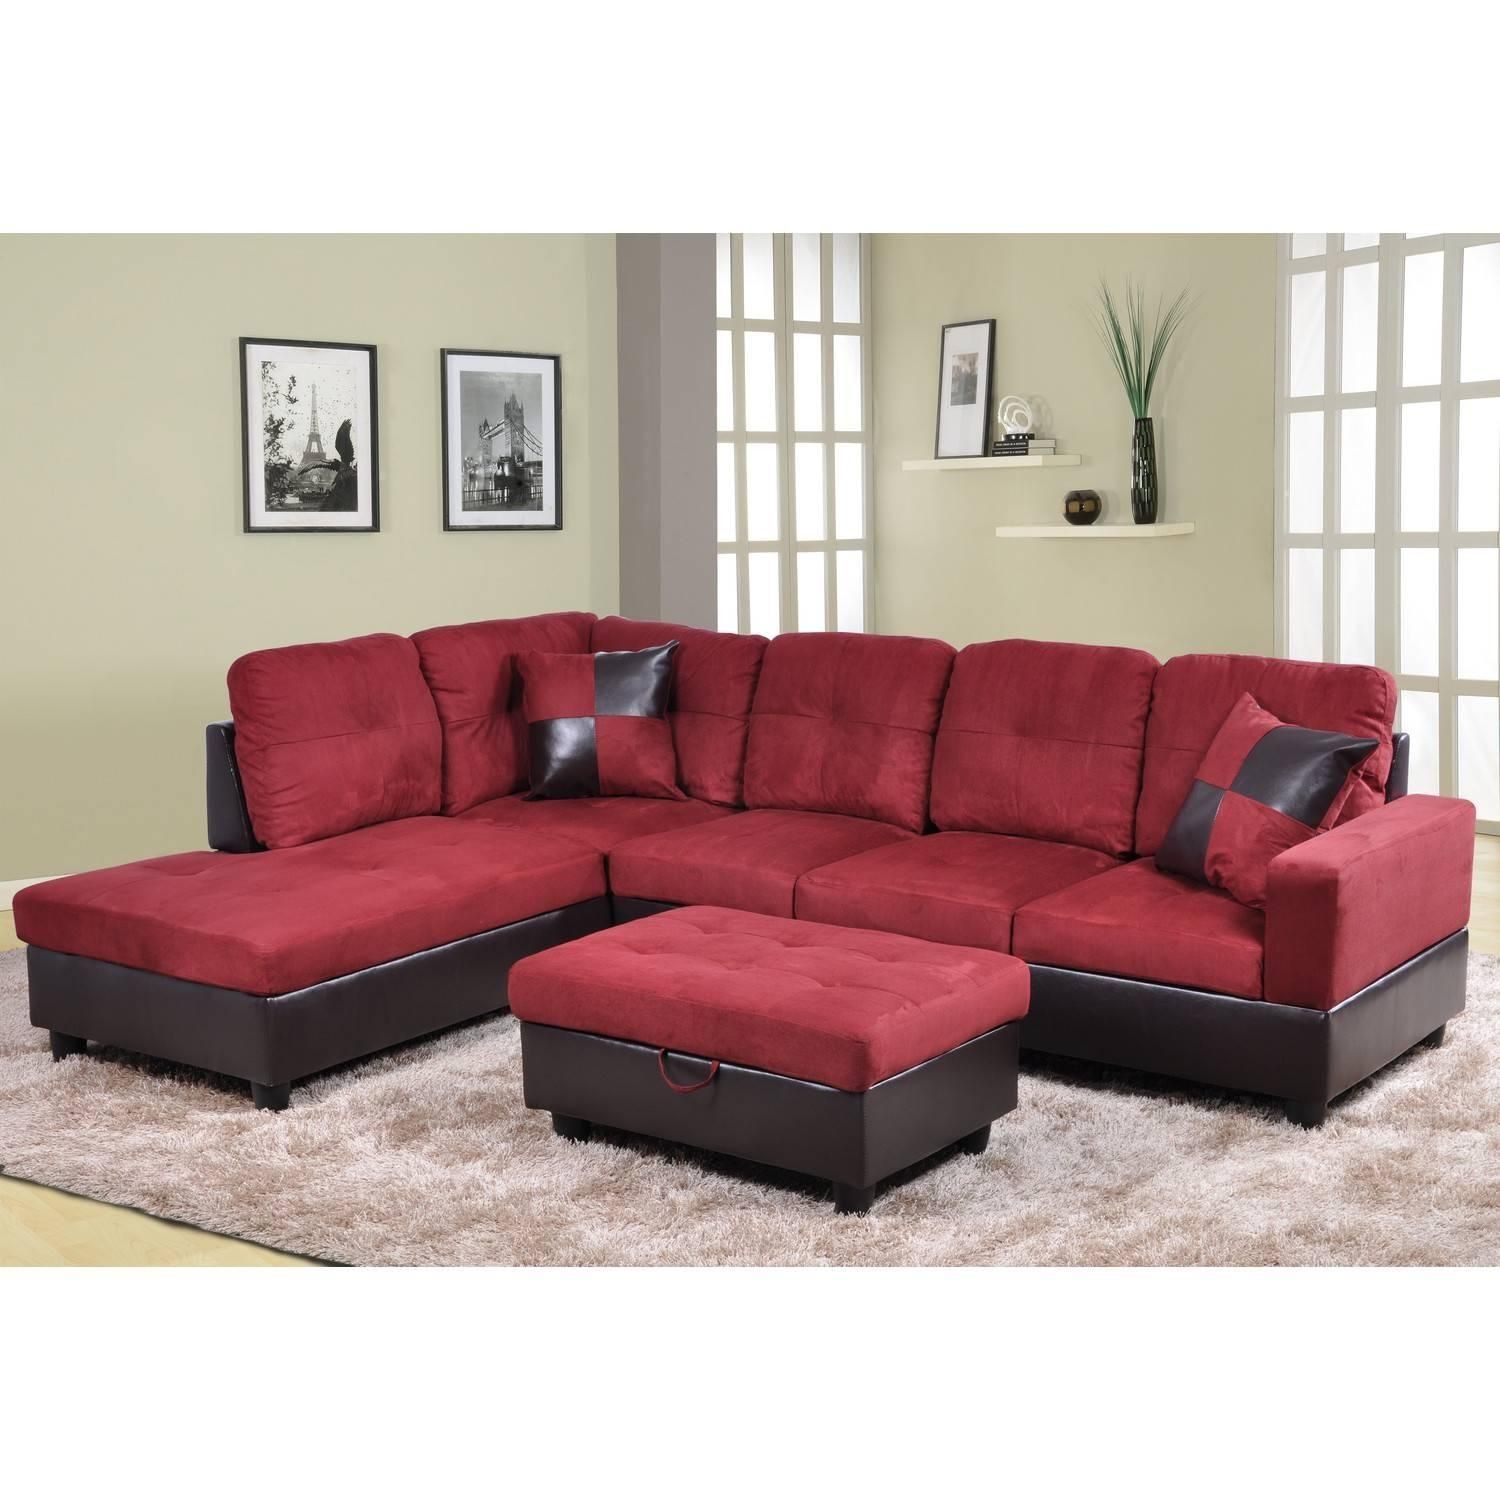 Sofa : Furniture: Beautiful Sectional Sofas Cheap For Living Room For Red Microfiber Sectional Sofas (View 21 of 21)